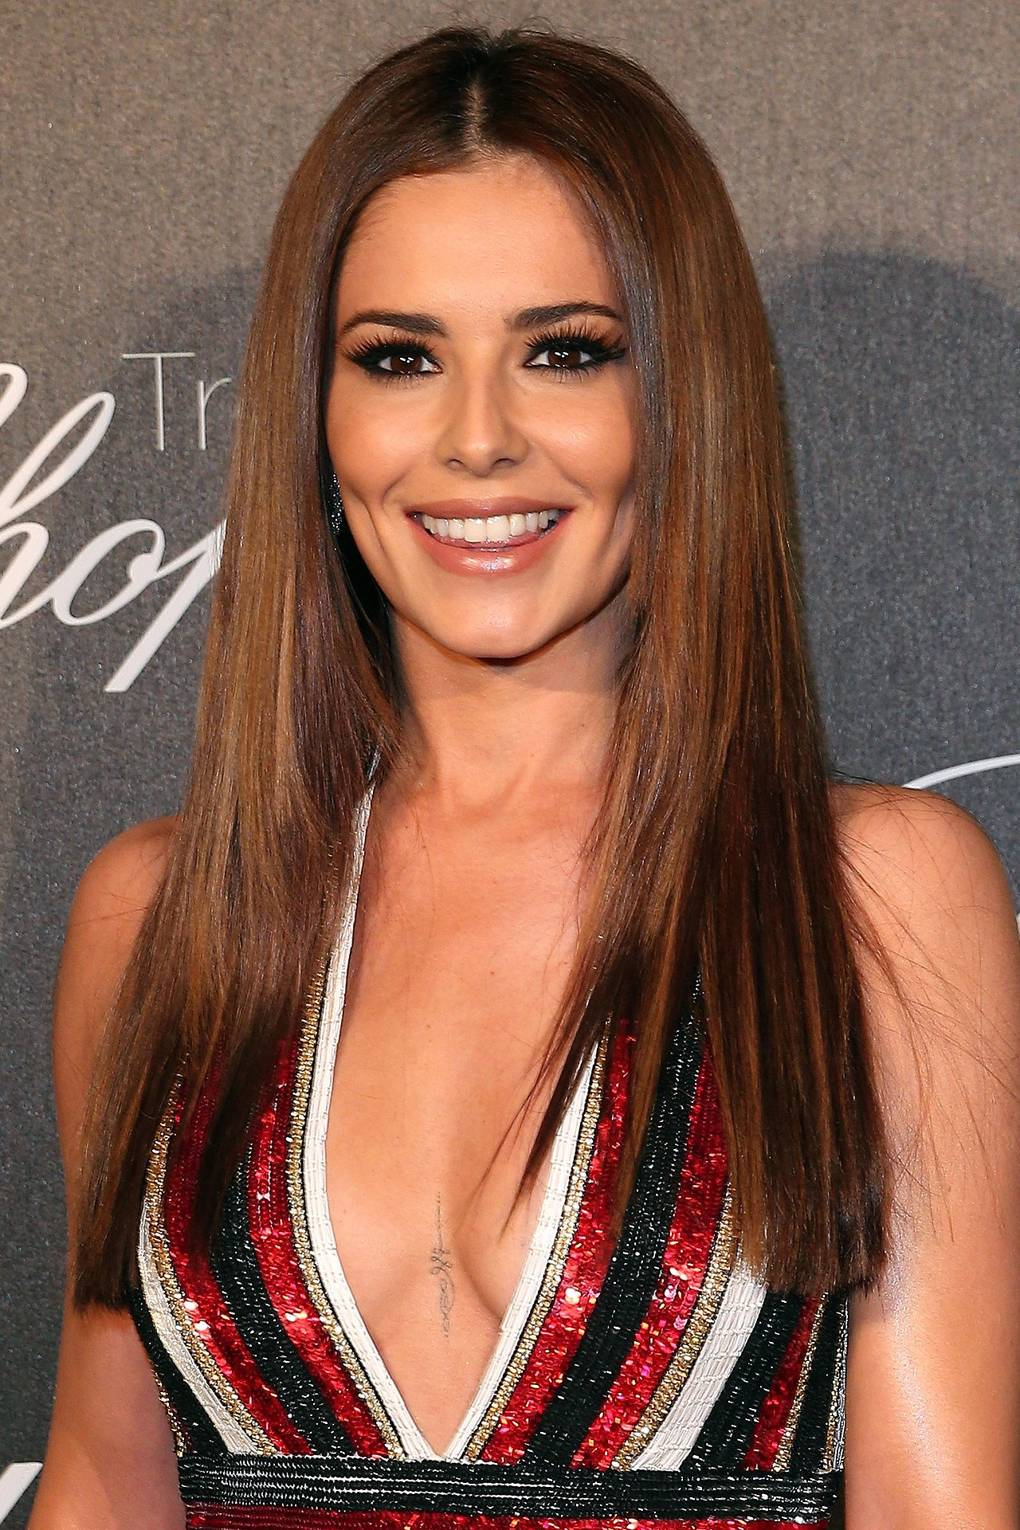 Cheryl Tattoo Picture Of The Cleavage Design Meaning Glamour Uk